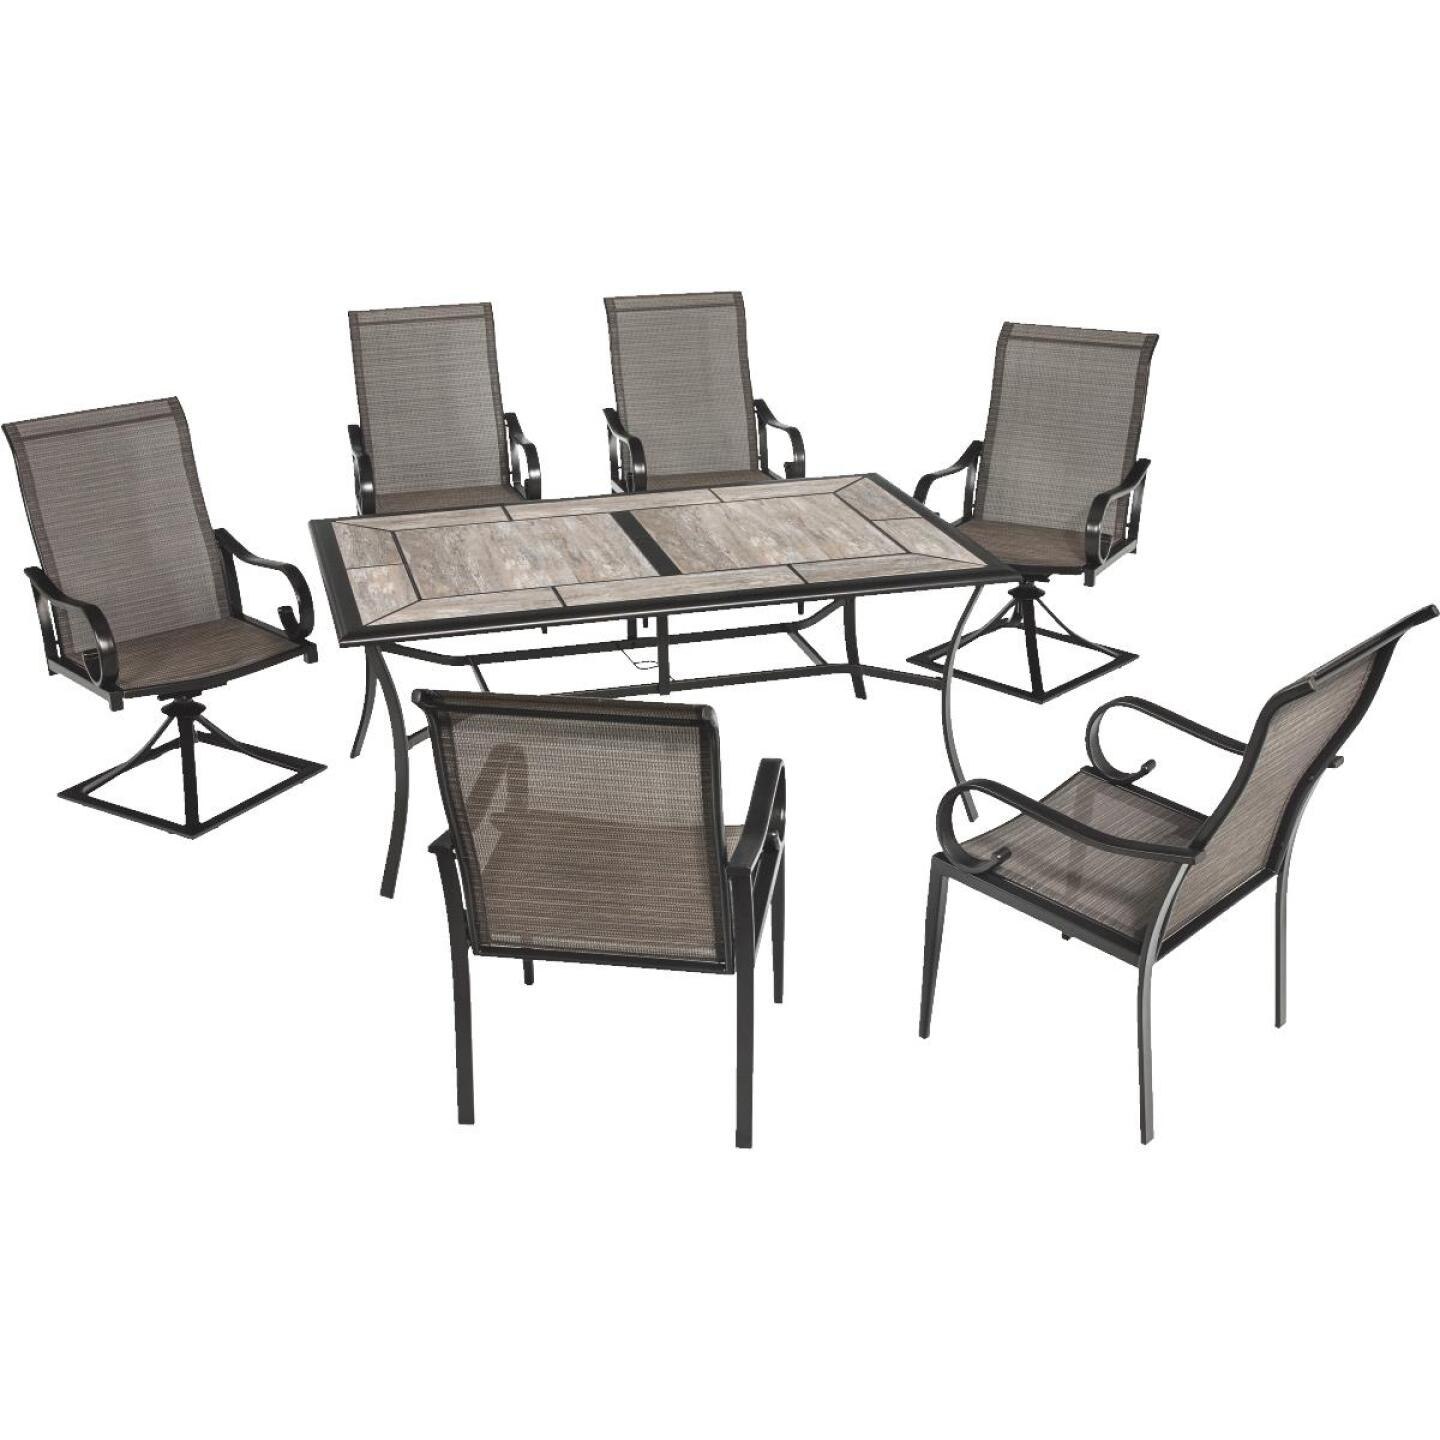 Outdoor Expressions Berkshire 7-Piece Dining Set Image 16